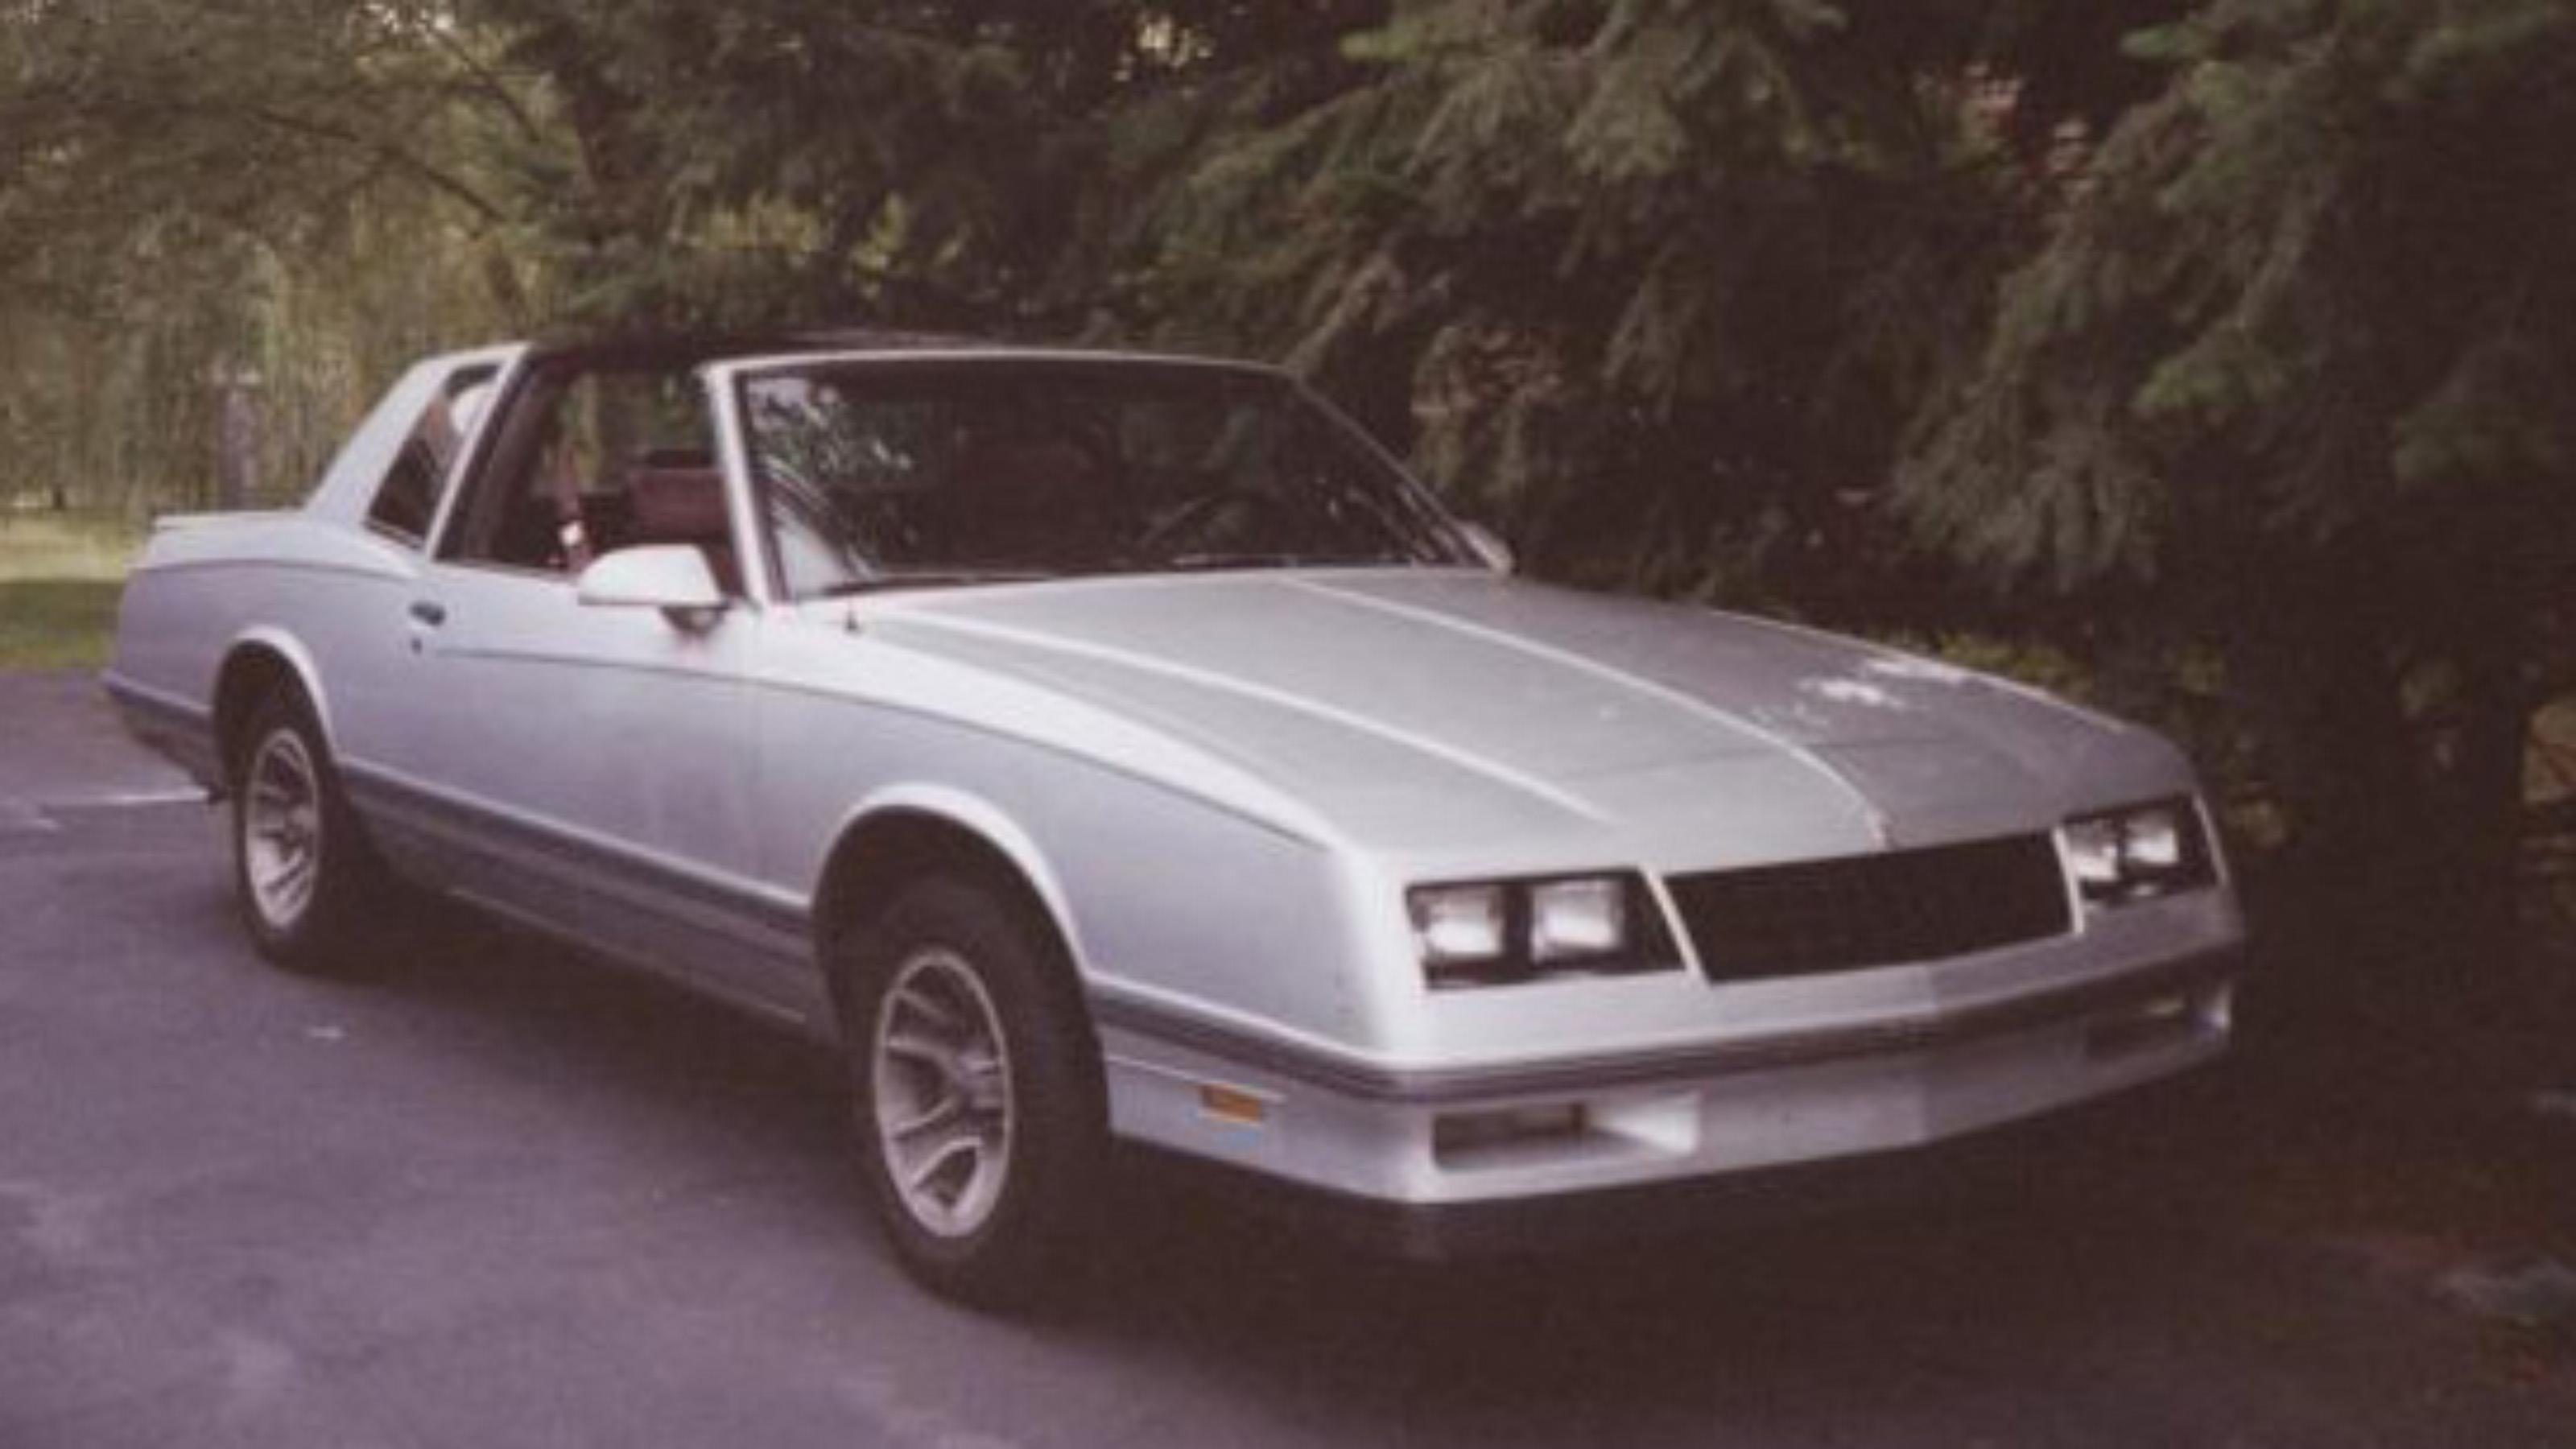 Another tzimisce_kh 1987 Chevrolet Monte Carlo post... - 13959426